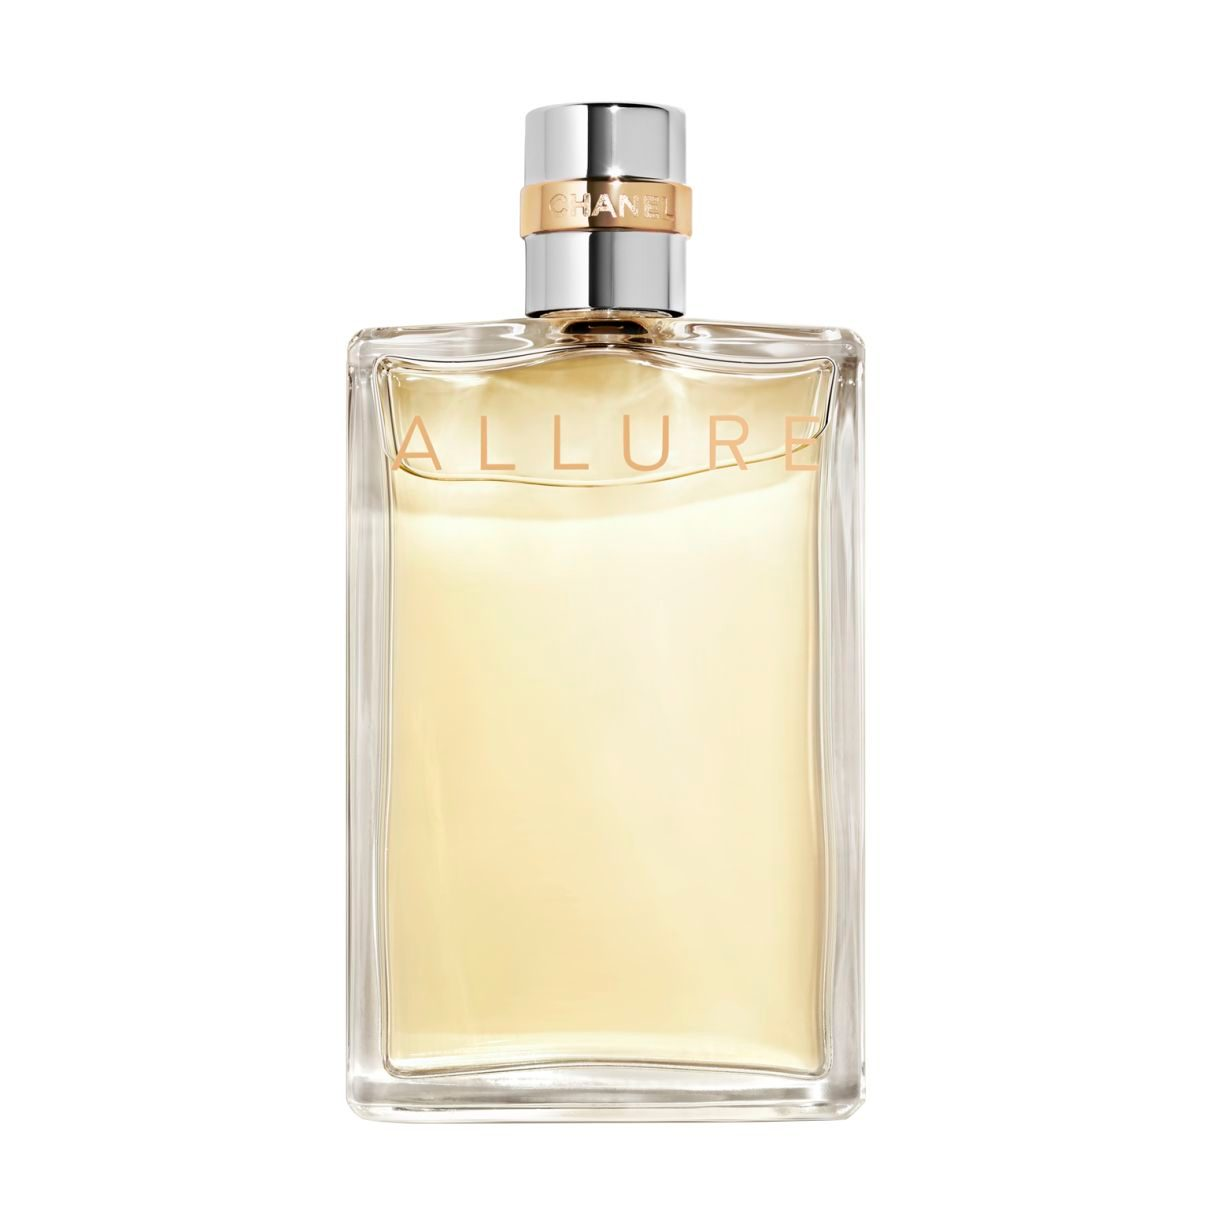 ALLURE EAU DE TOILETTE SPRAY 50ML